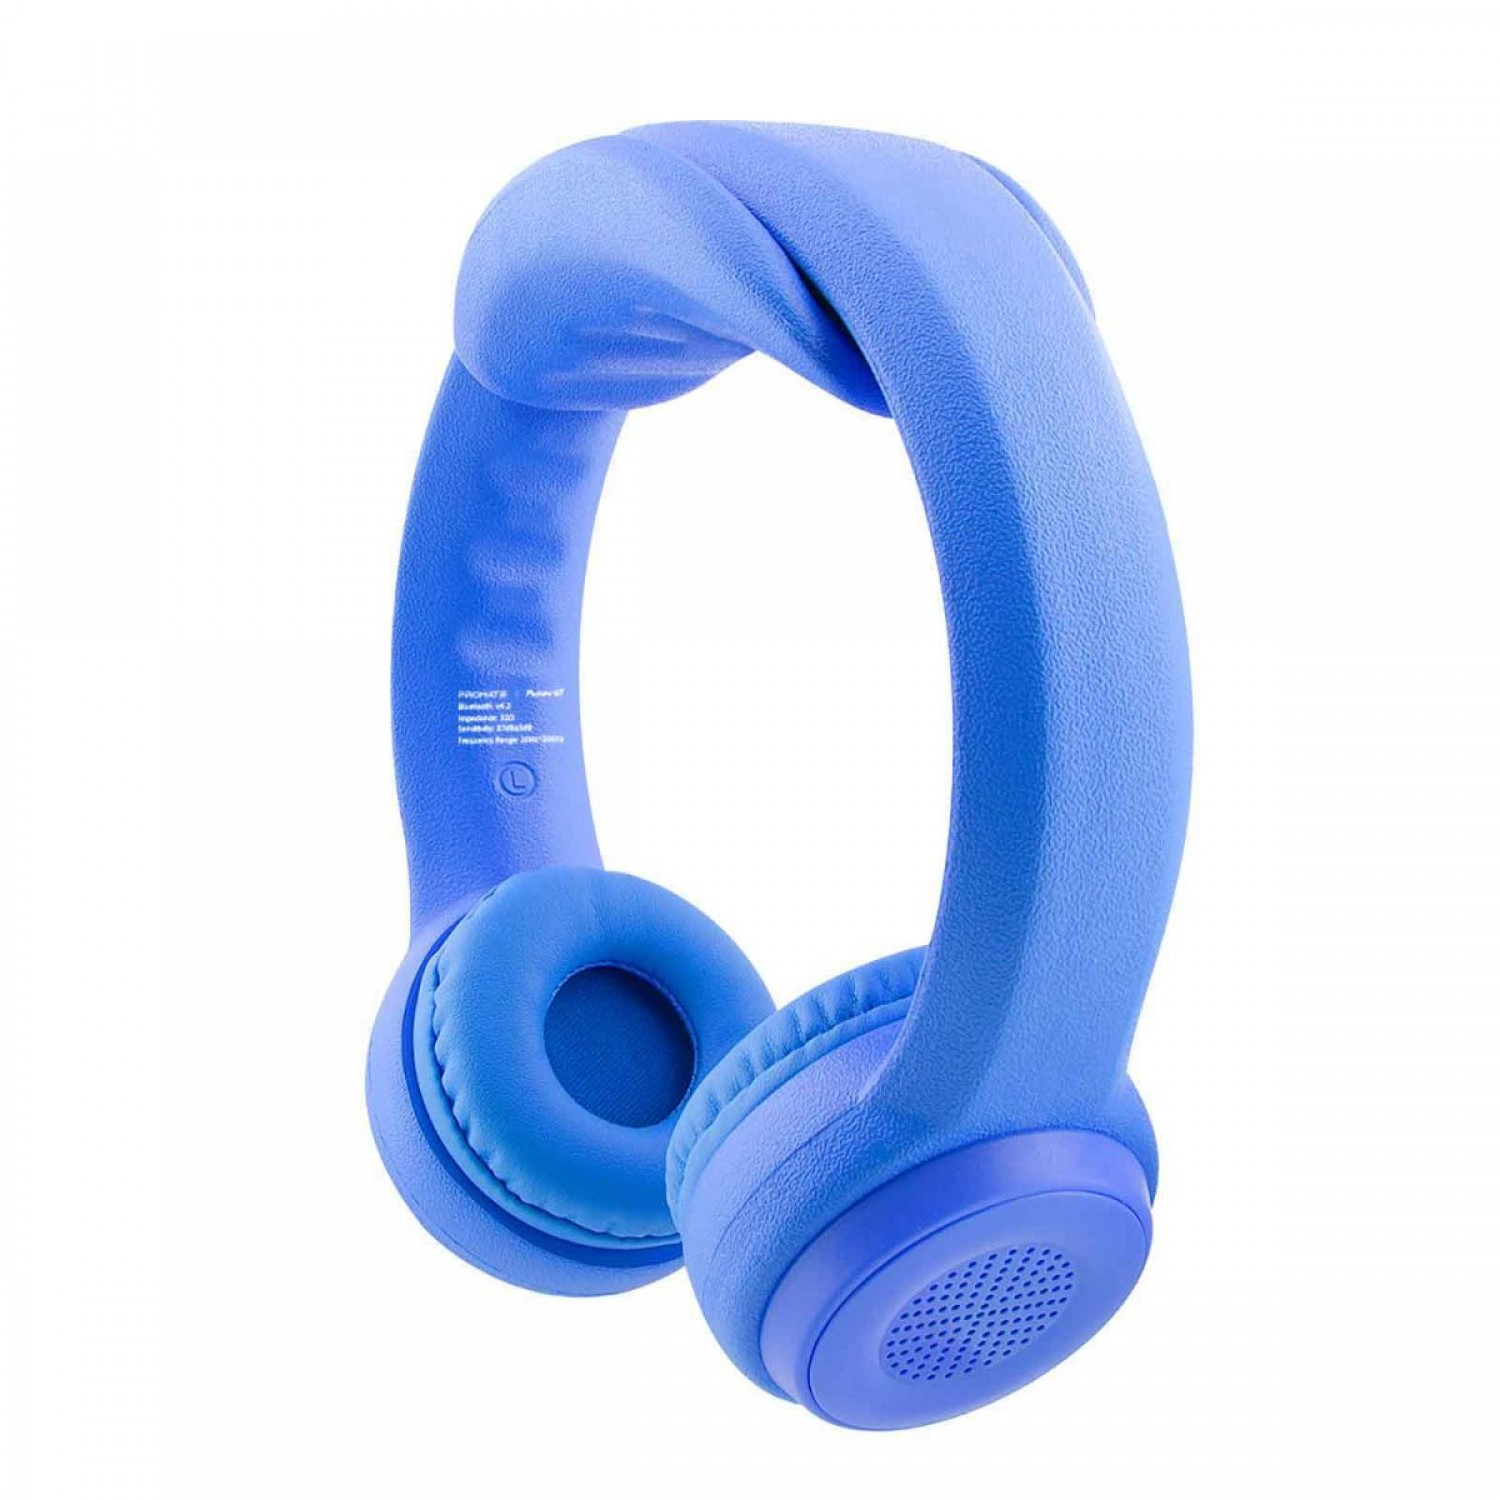 Promate Kids Bluetooth Headphones, Premium Wireless Flex-foam Stereo Headset with Volume Limiting, Soft Cushion Ear Pads and Built-In Mic for Travel, Smartphones, Music, Flexure-BT Blue